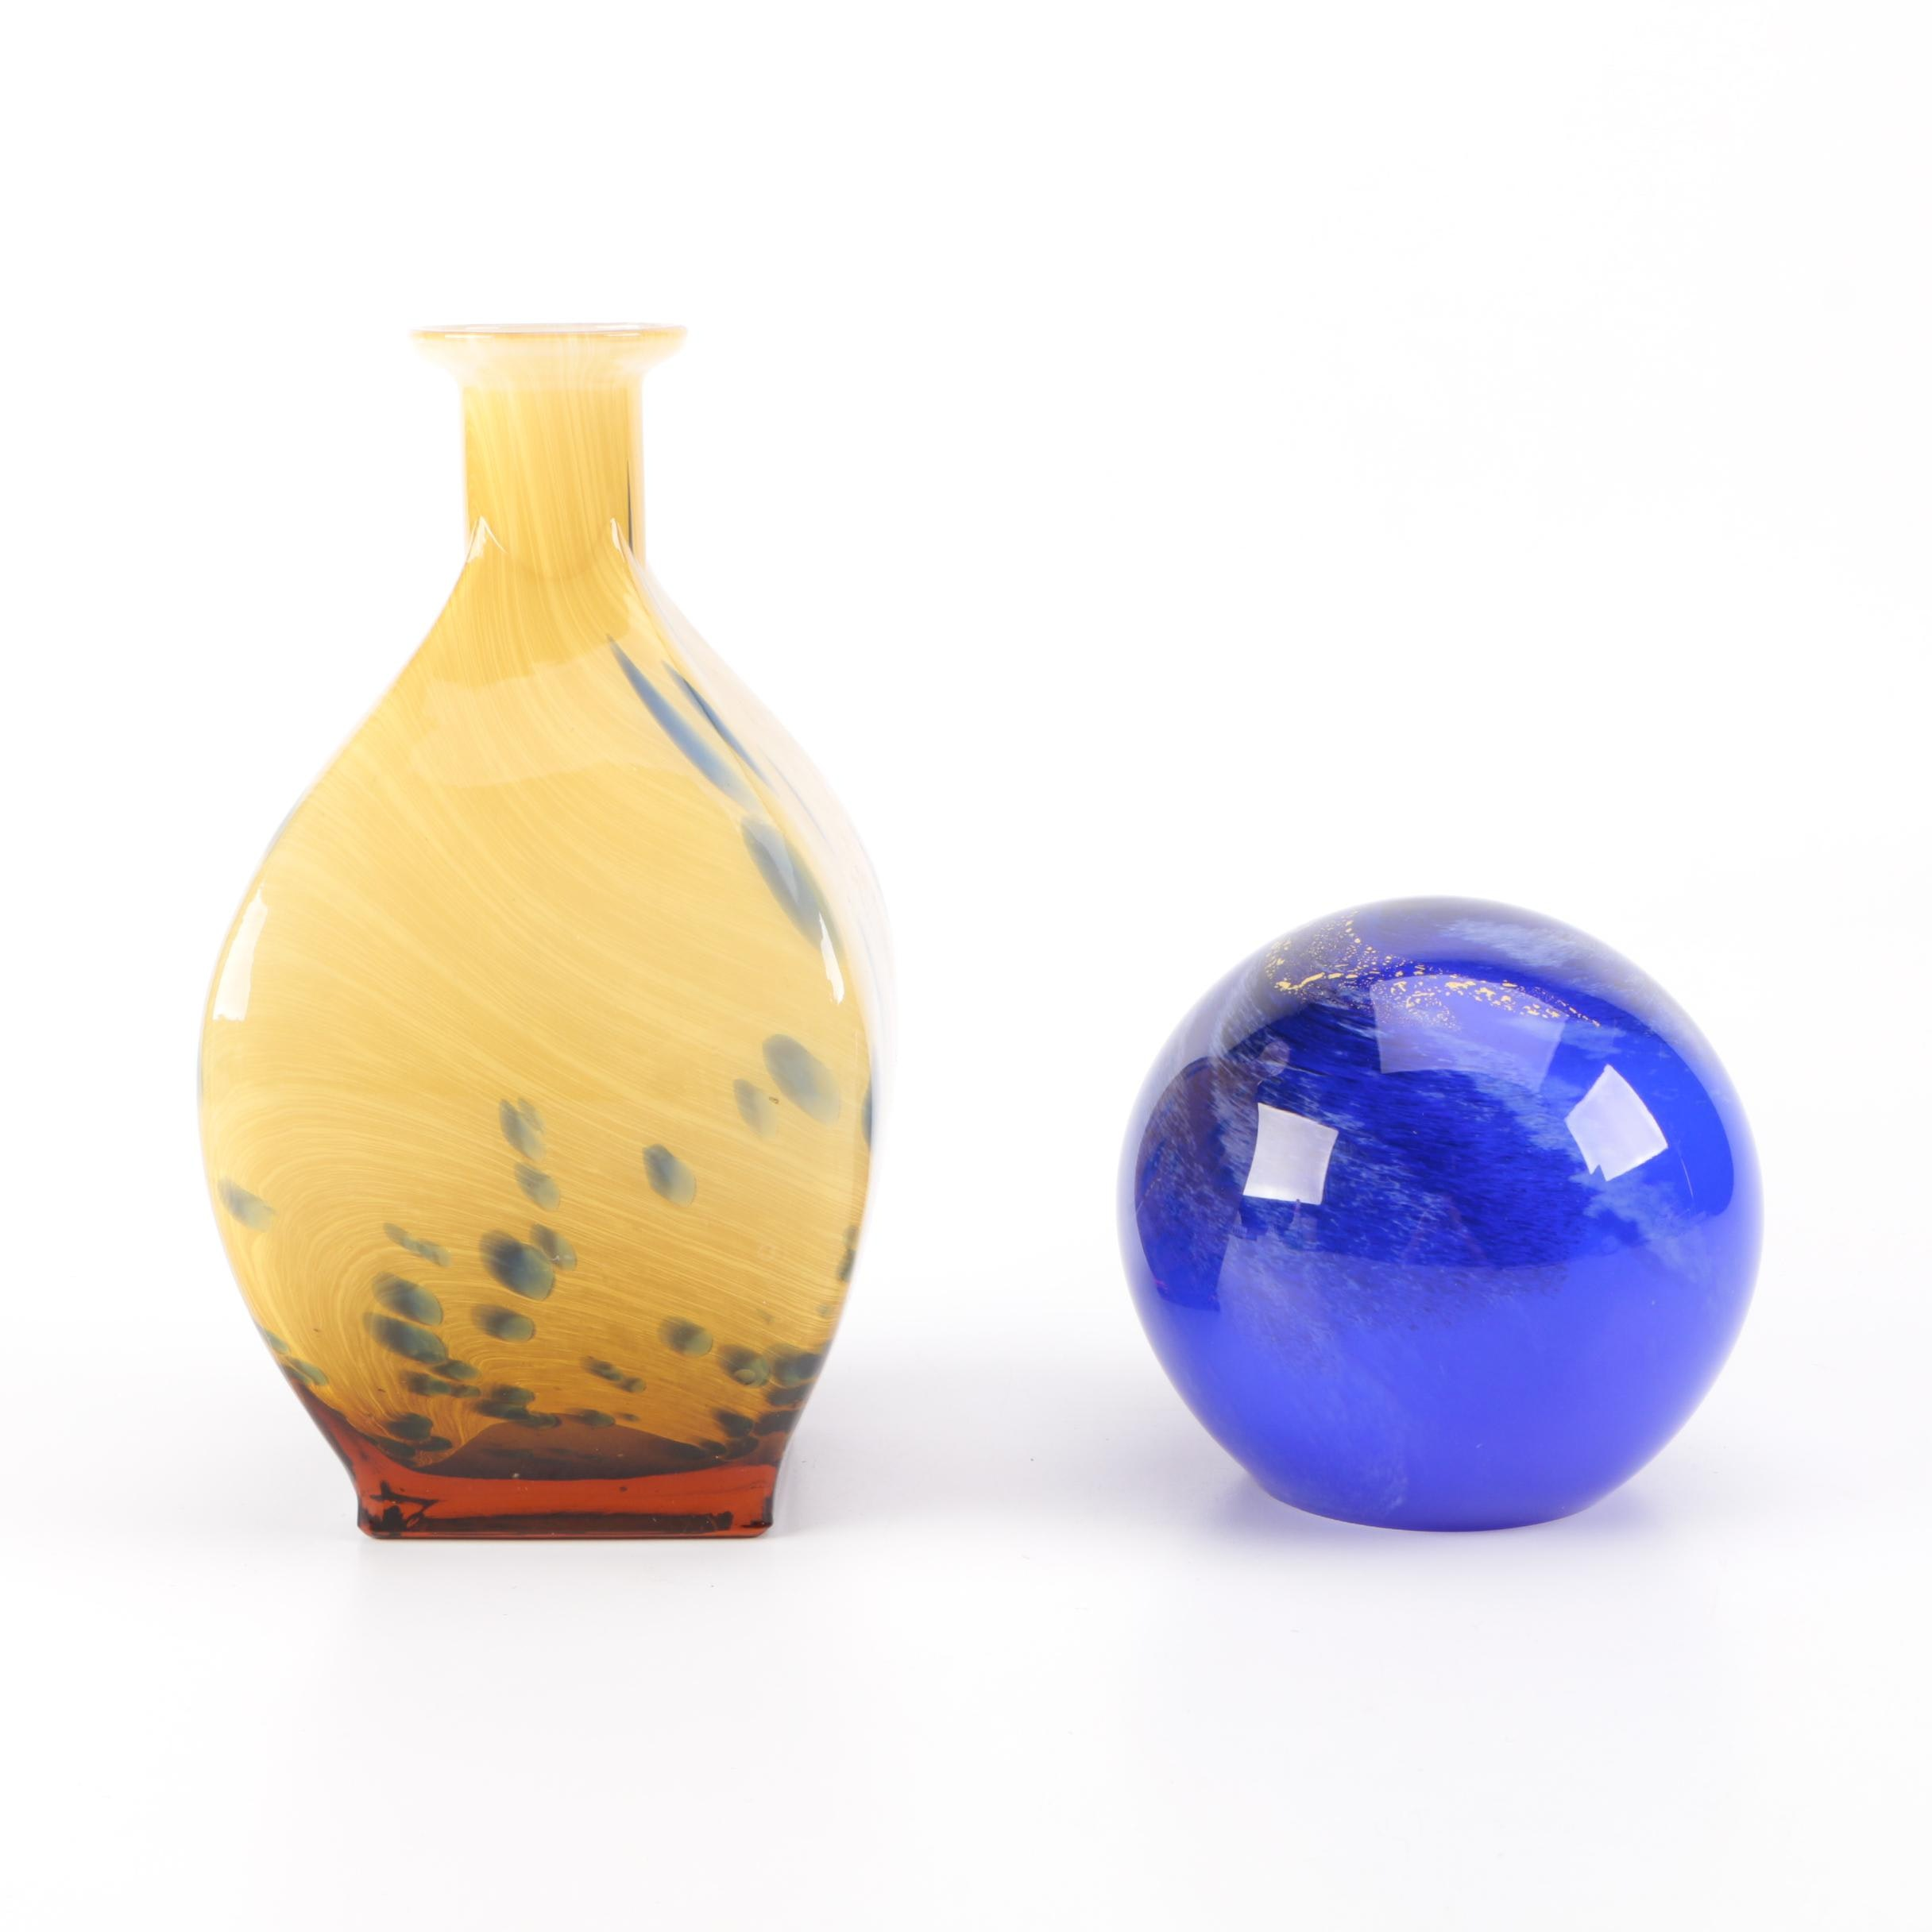 Decorative Art Glass Paperweight and Vase